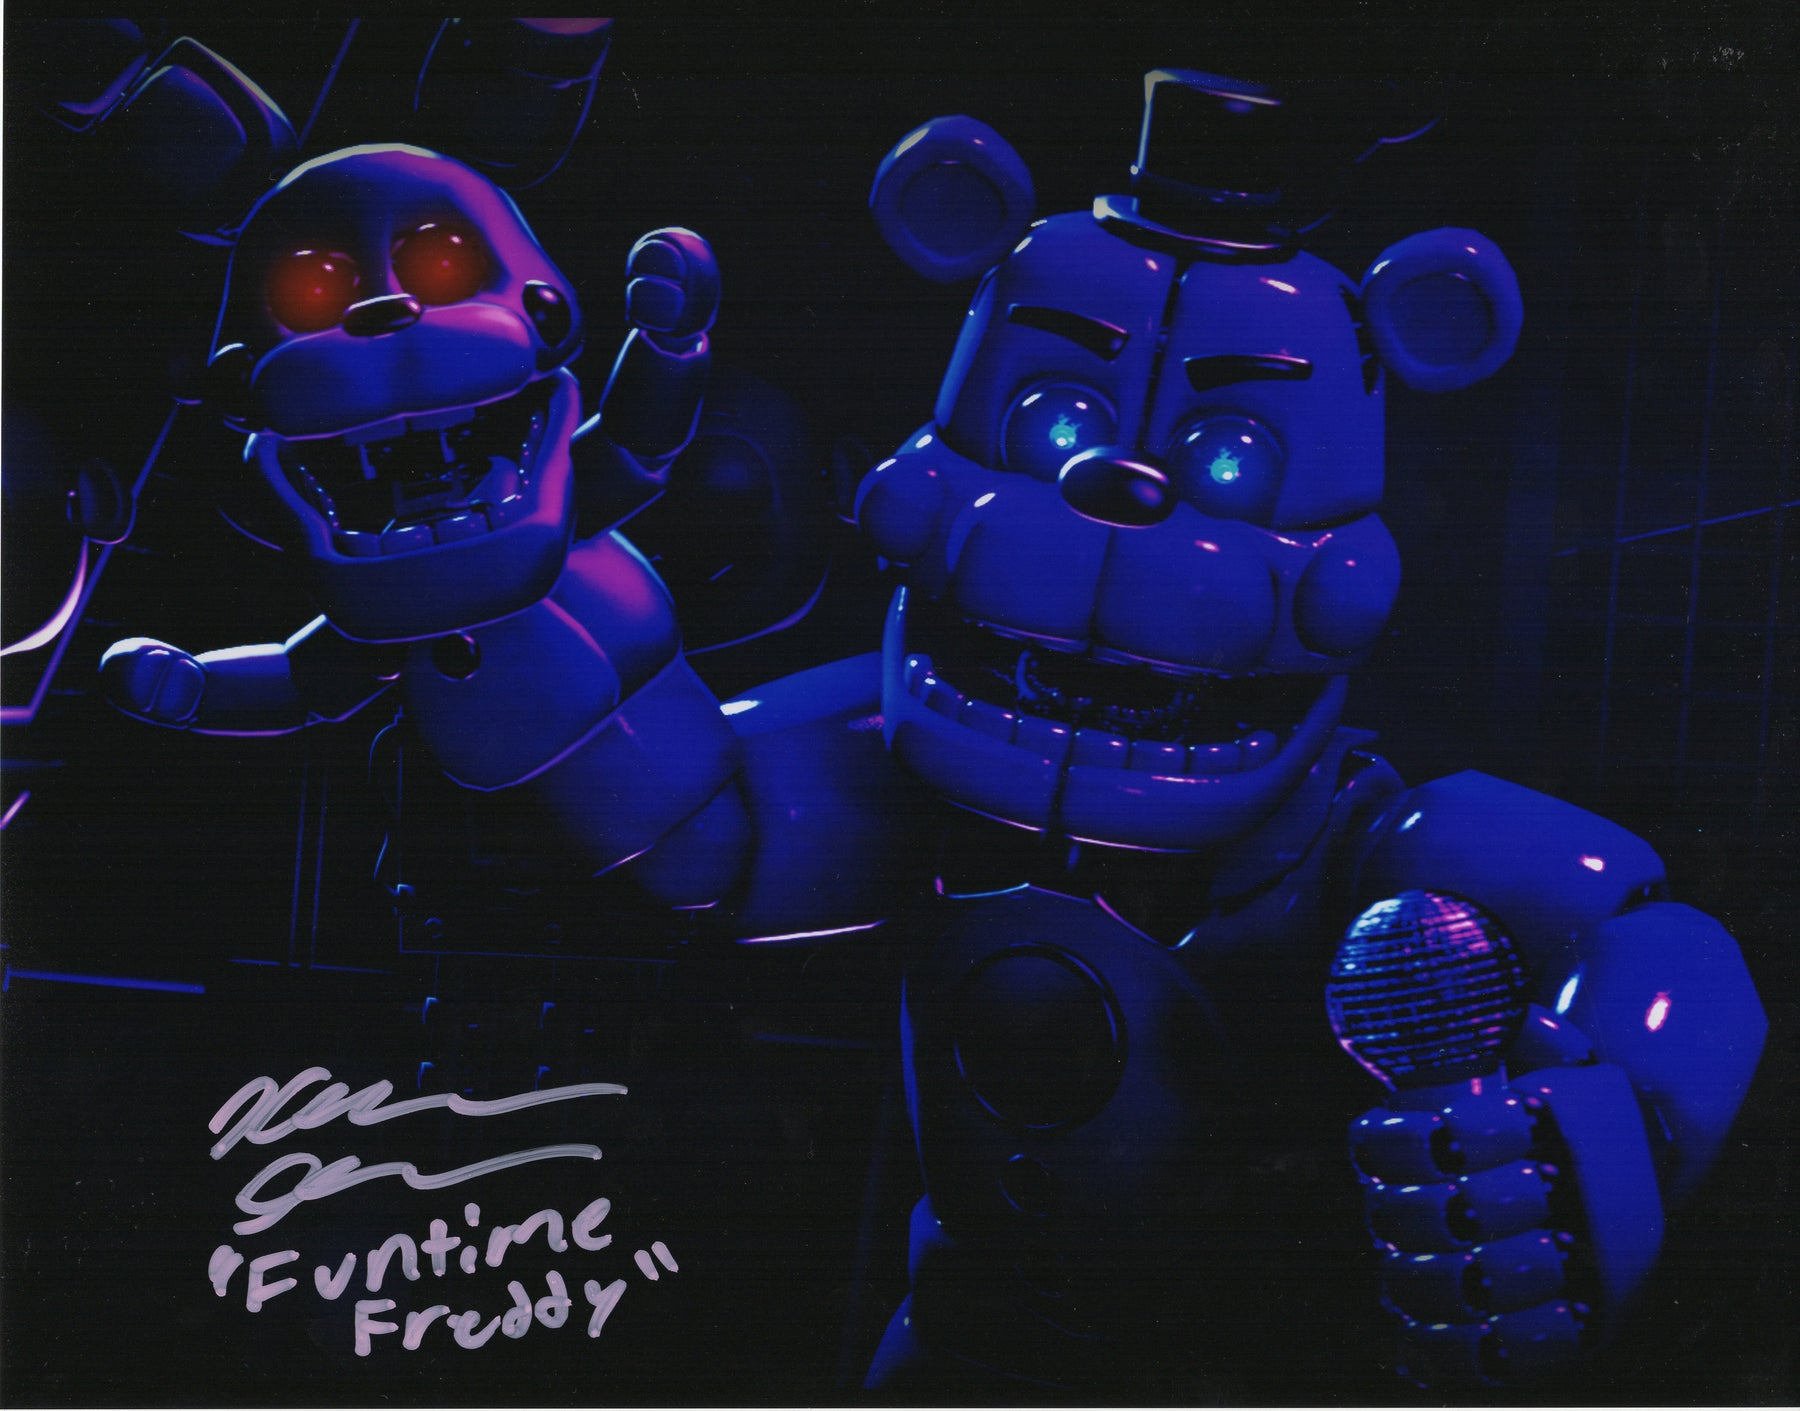 Kellen Goff Signed 11x14 Photo Five Nights at Funtime Freddy's COA H7